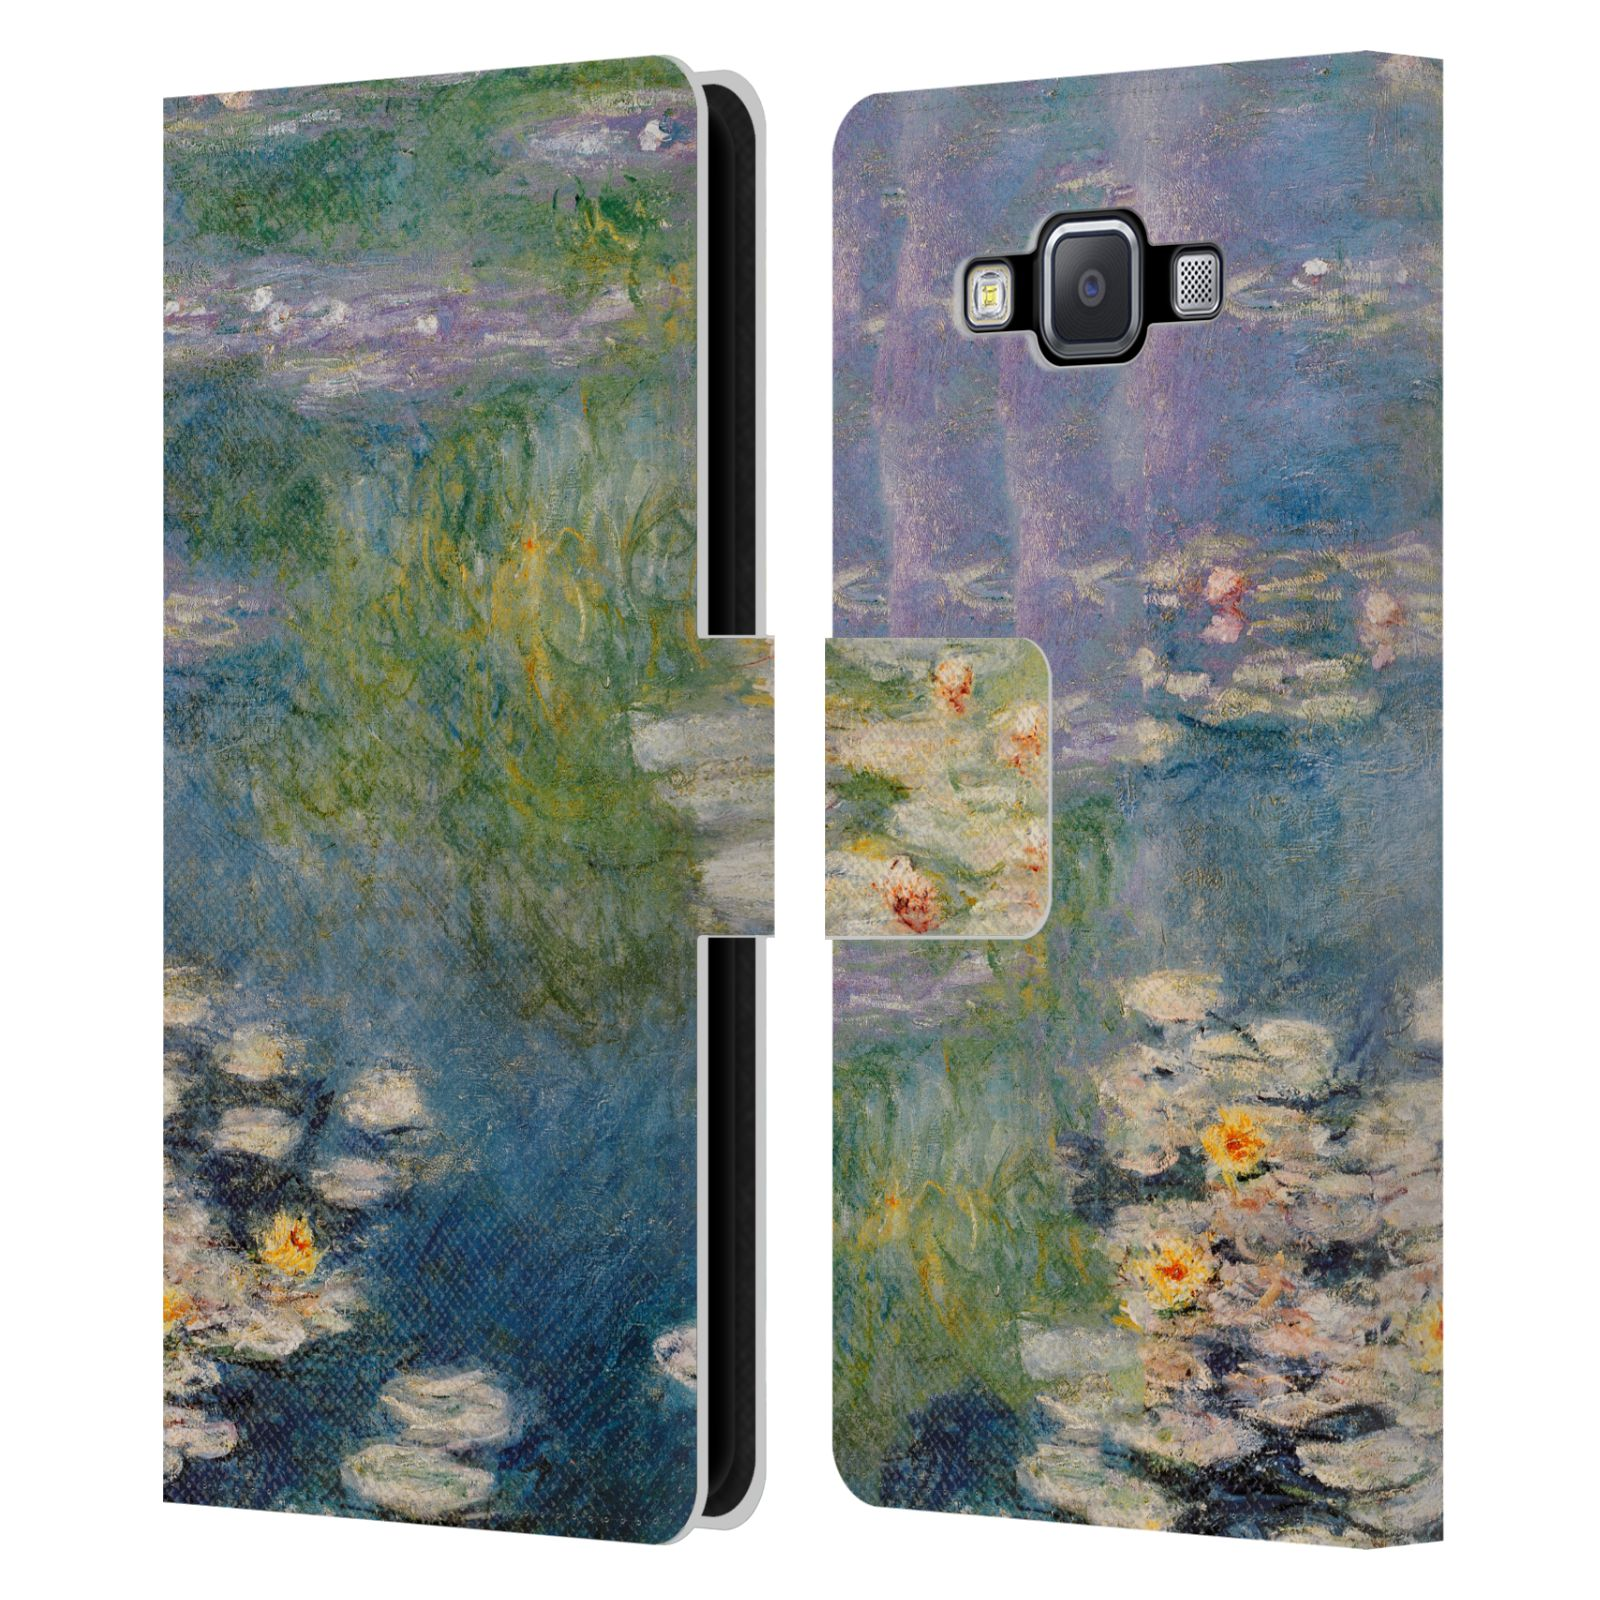 OFFICIAL-MASTERS-COLLECTION-PAINTINGS-1-LEATHER-BOOK-CASE-FOR-SAMSUNG-PHONES-2